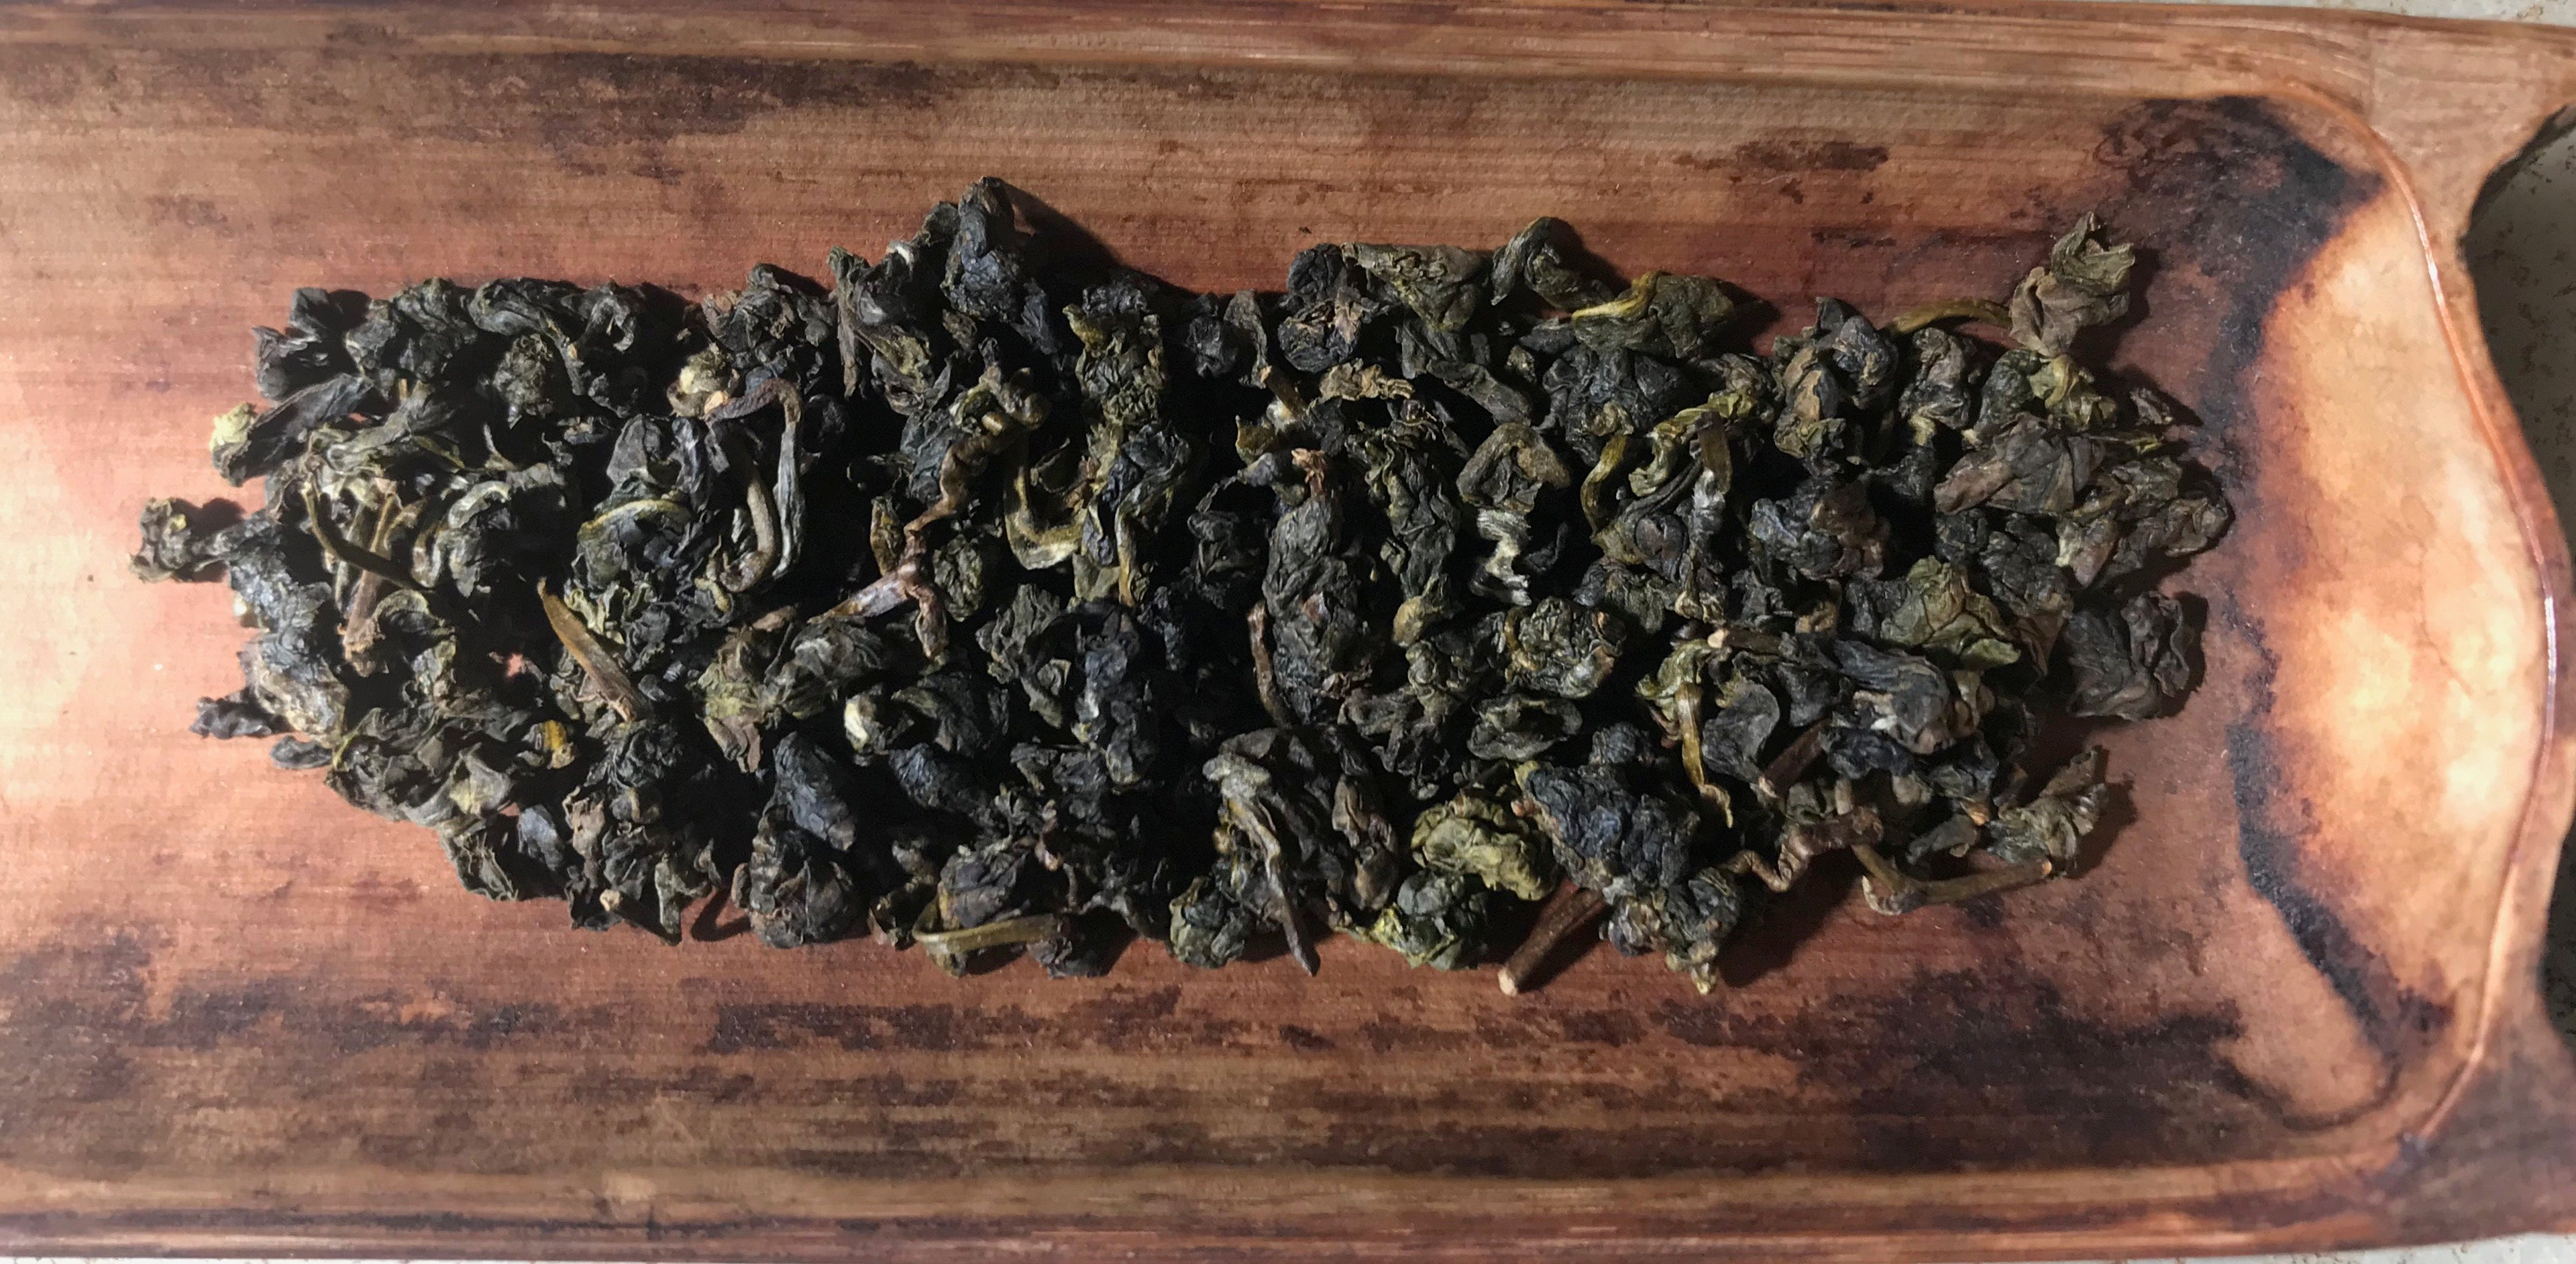 Dong Ding Tie Guan Yin dried tea leaves